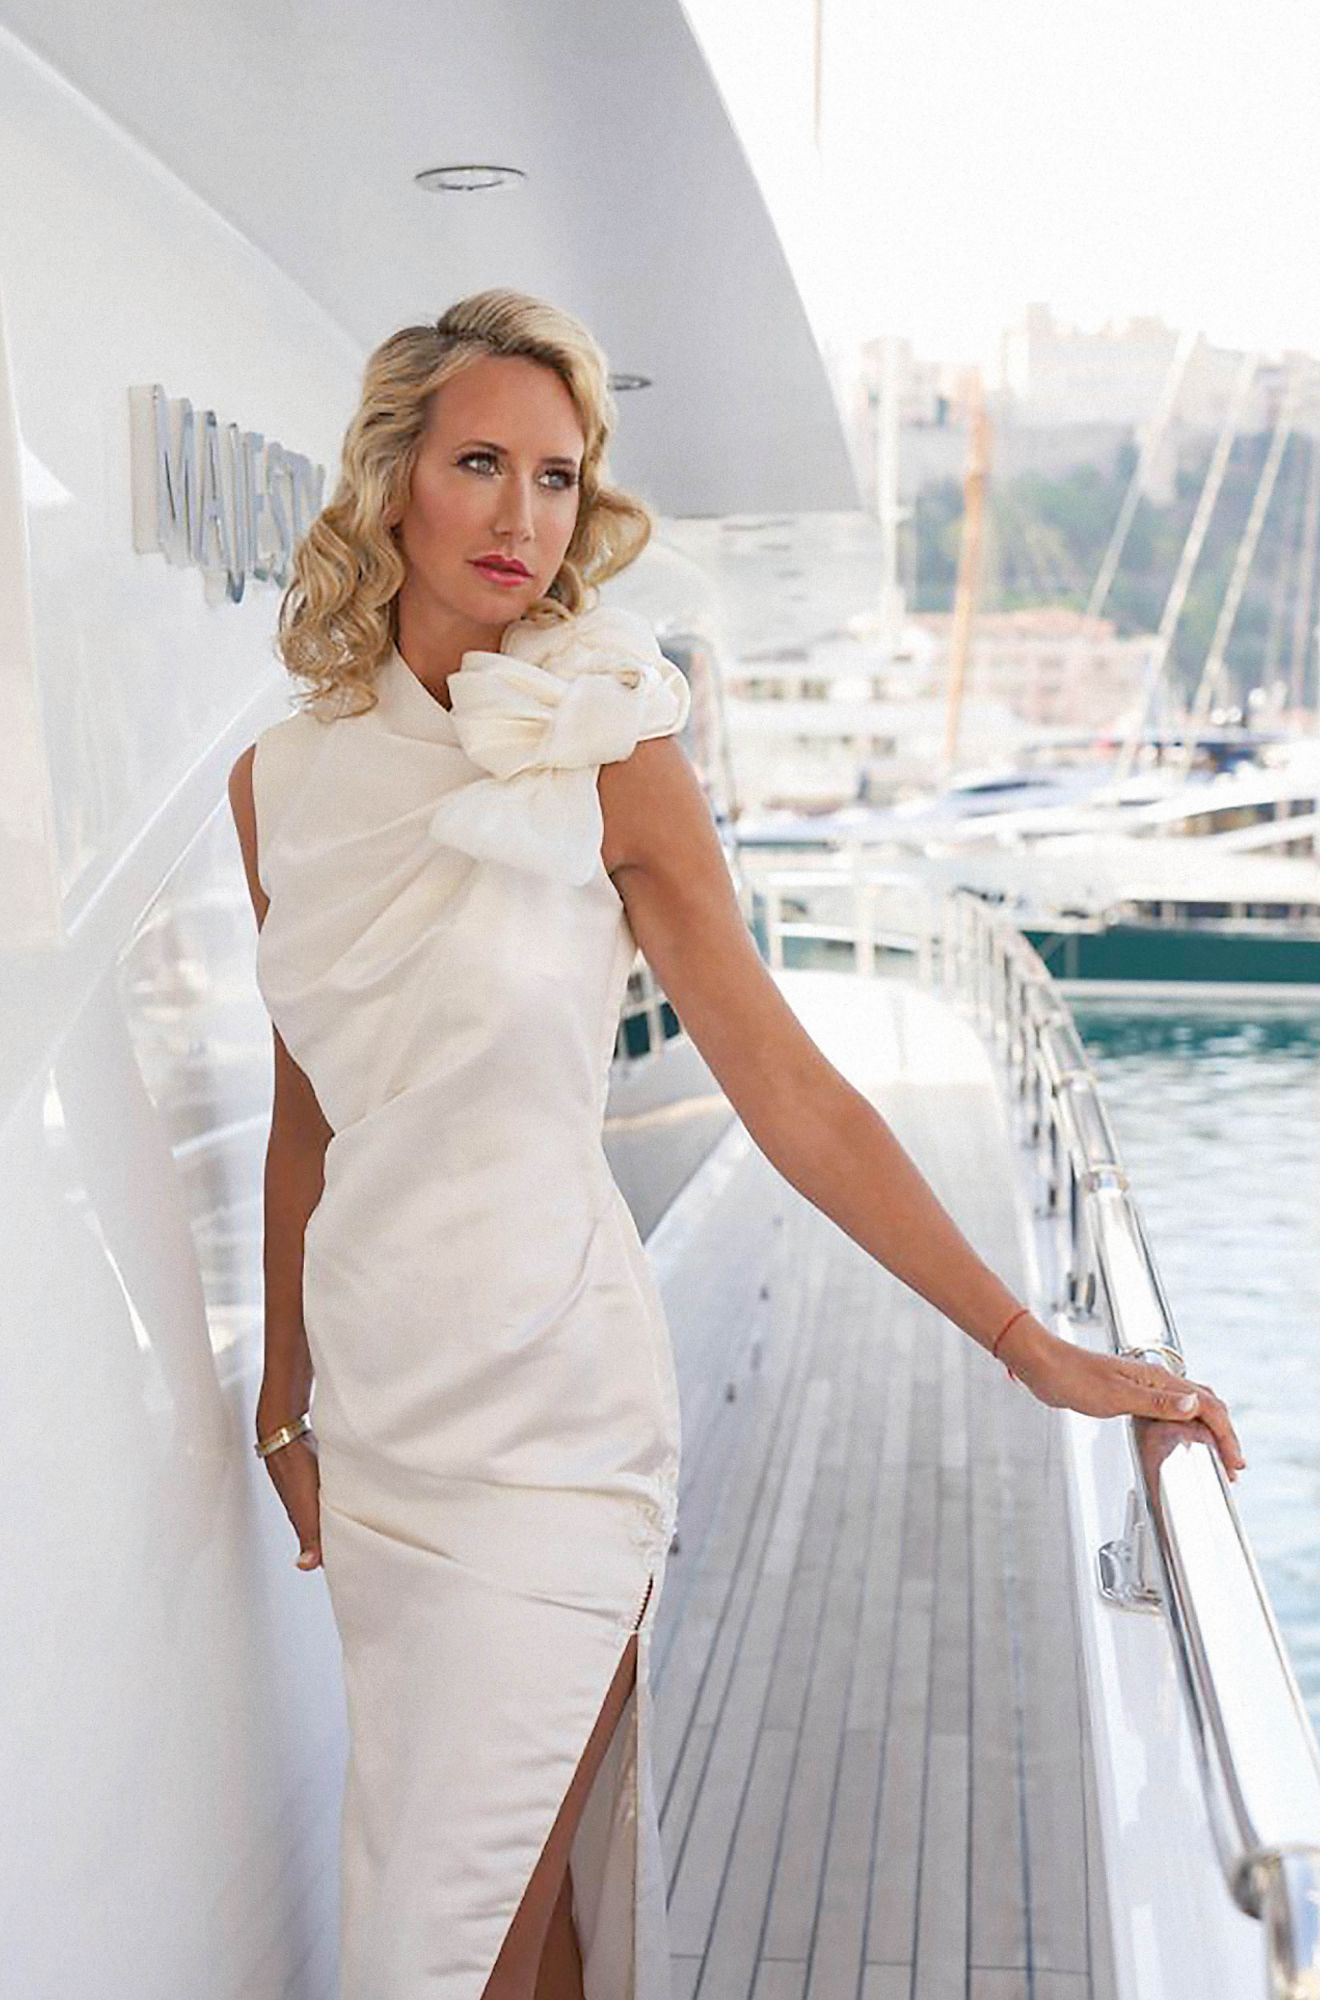 My Favourite Things: Lady Victoria Hervey